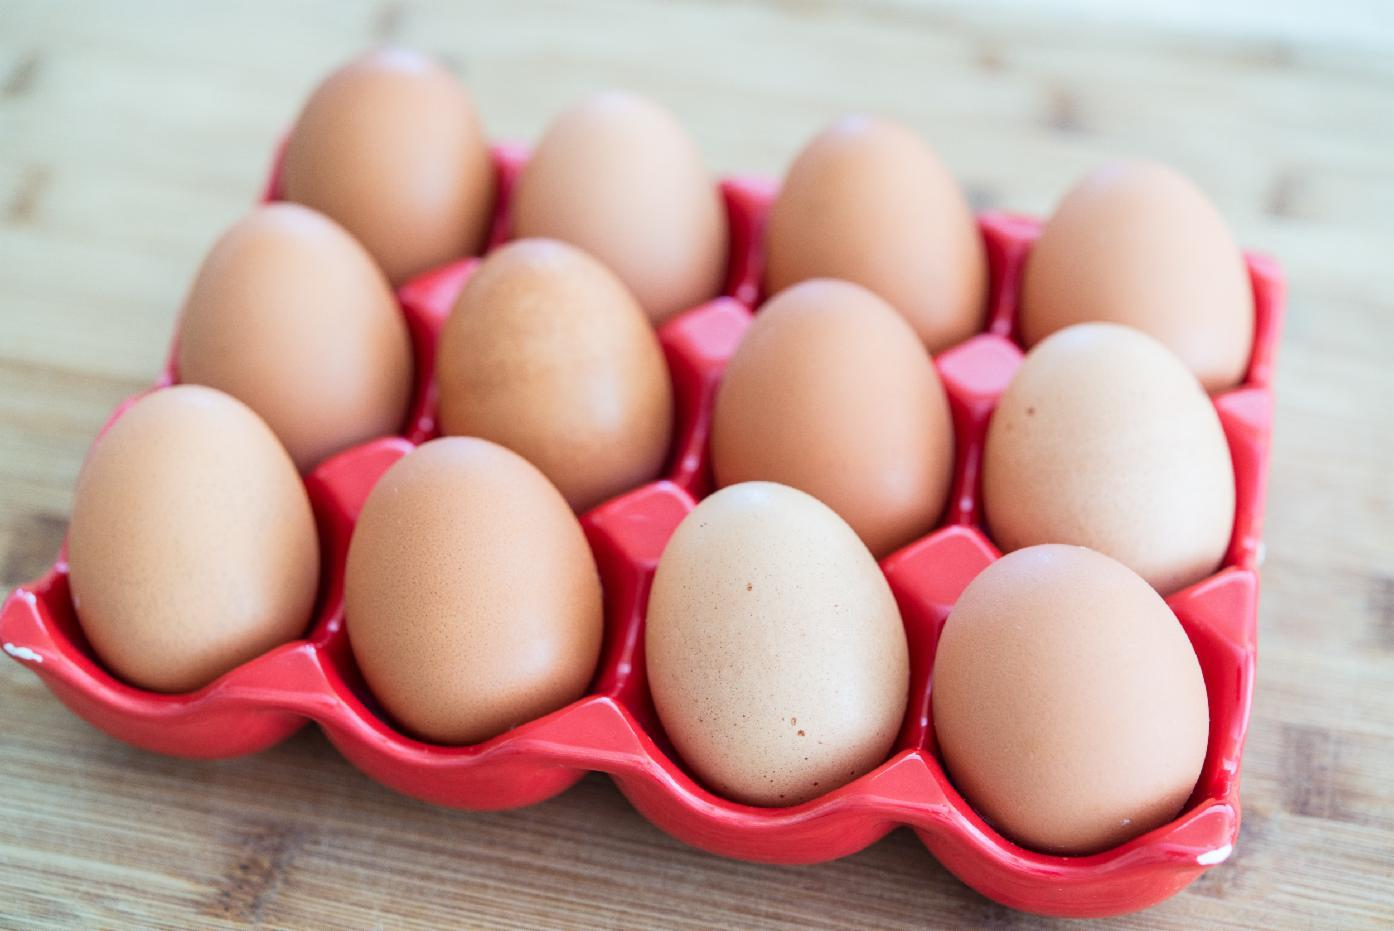 Which egg food is your favorite: Boiled Egg, Half-Fried Egg or Omelette?